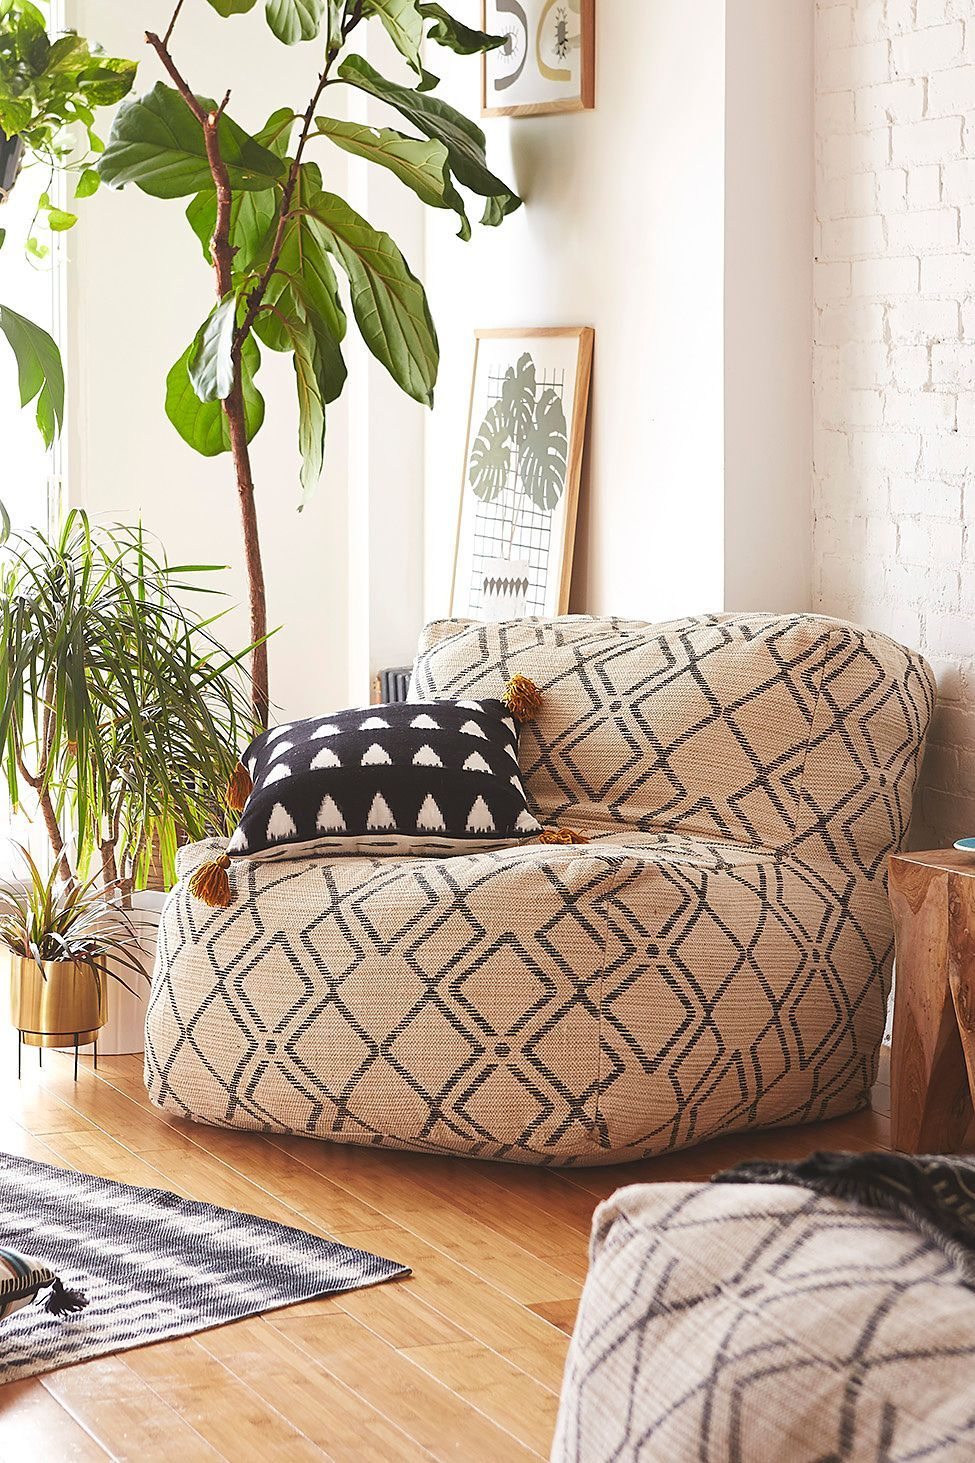 Bobo Patterned Lounge Chair Bean bag chair, Room decor